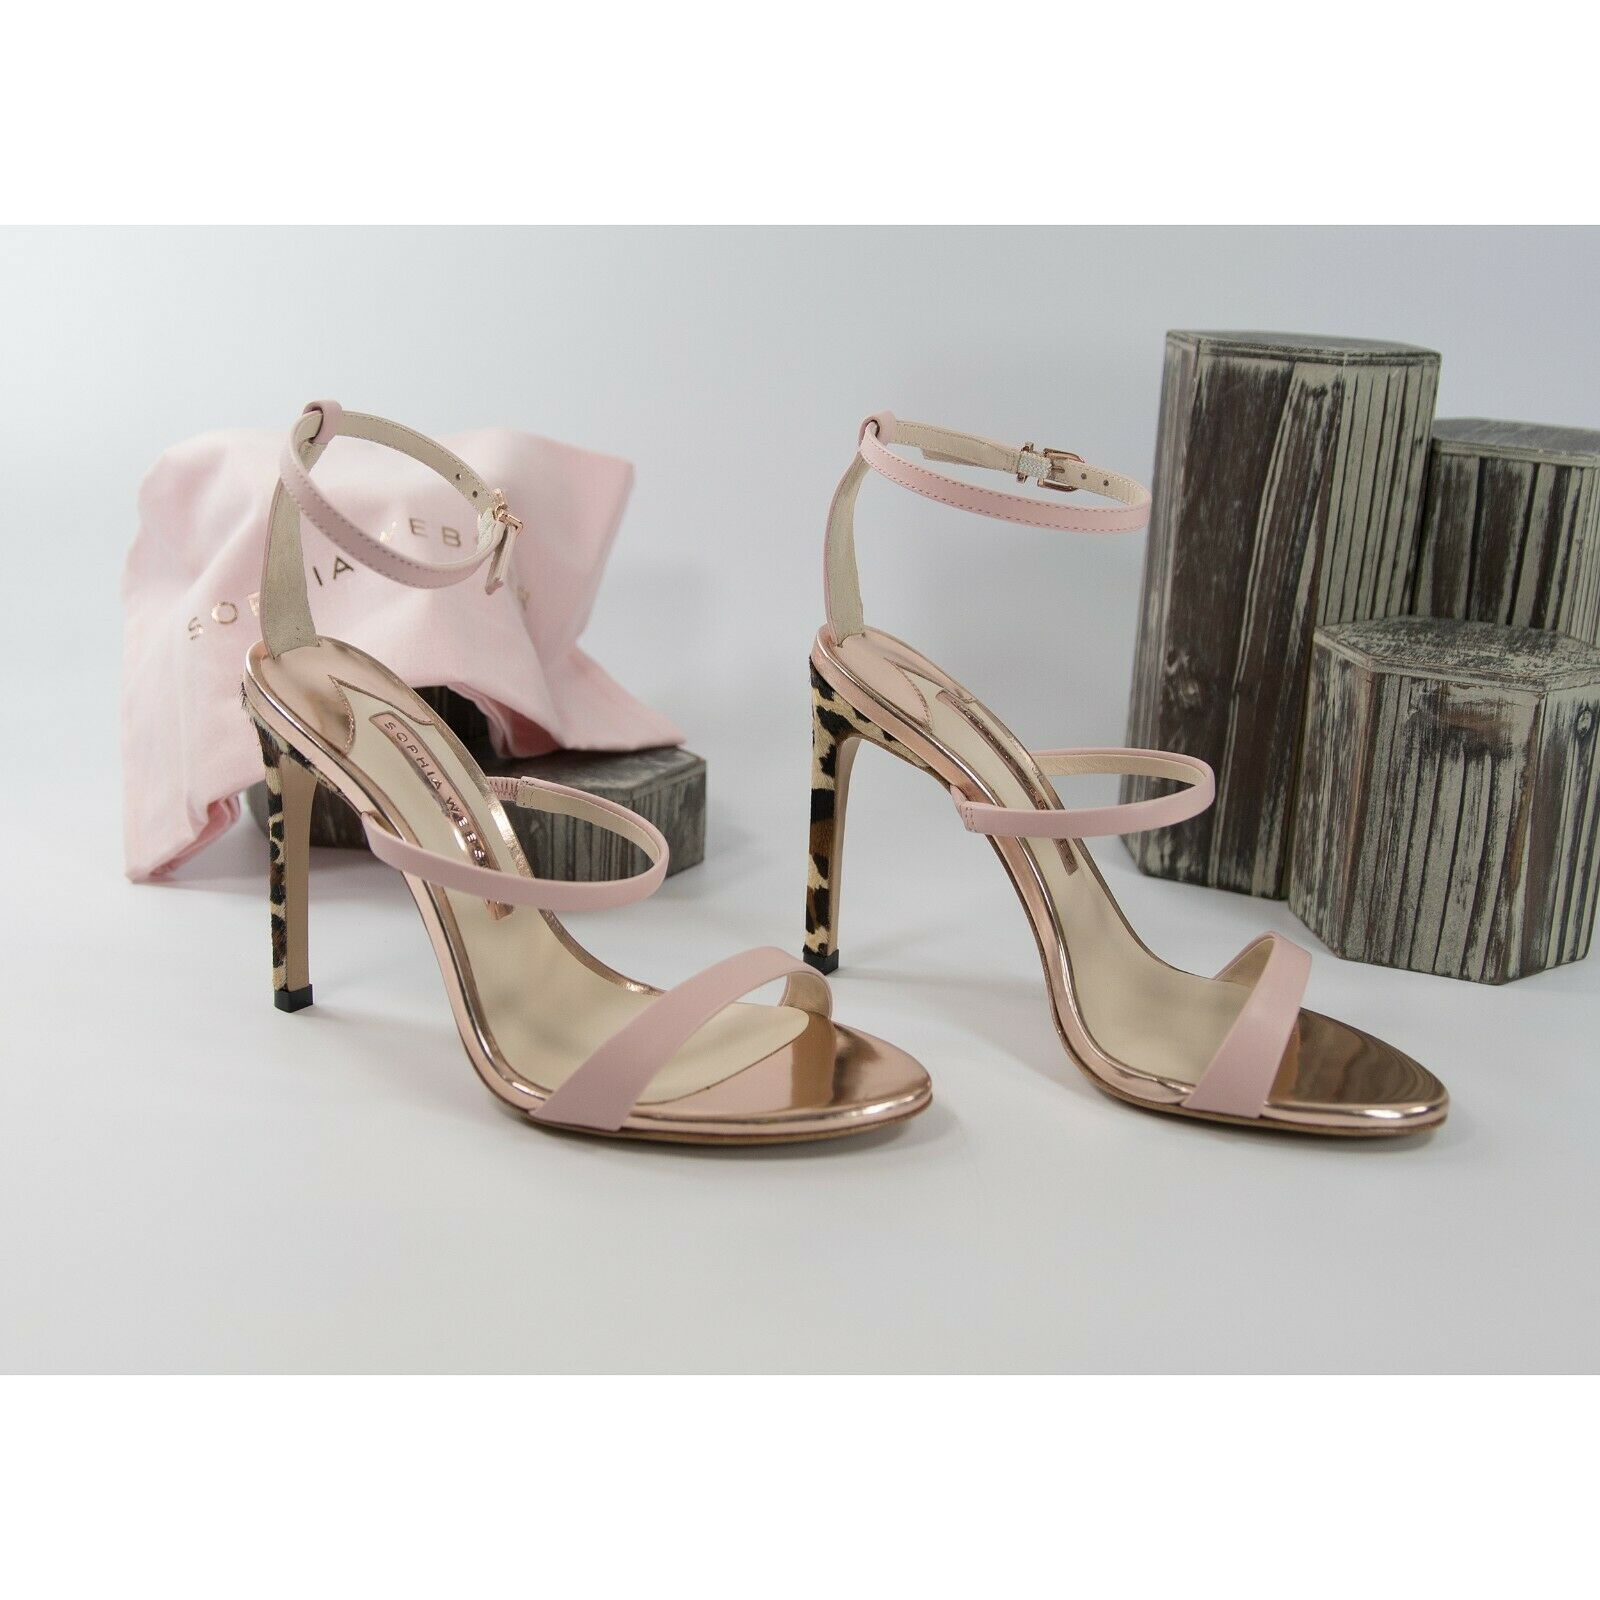 Primary image for Sophia Webster Rosalind Pink Leather Leopard Calf Hair Heels Size 39.5 9.5 NIB